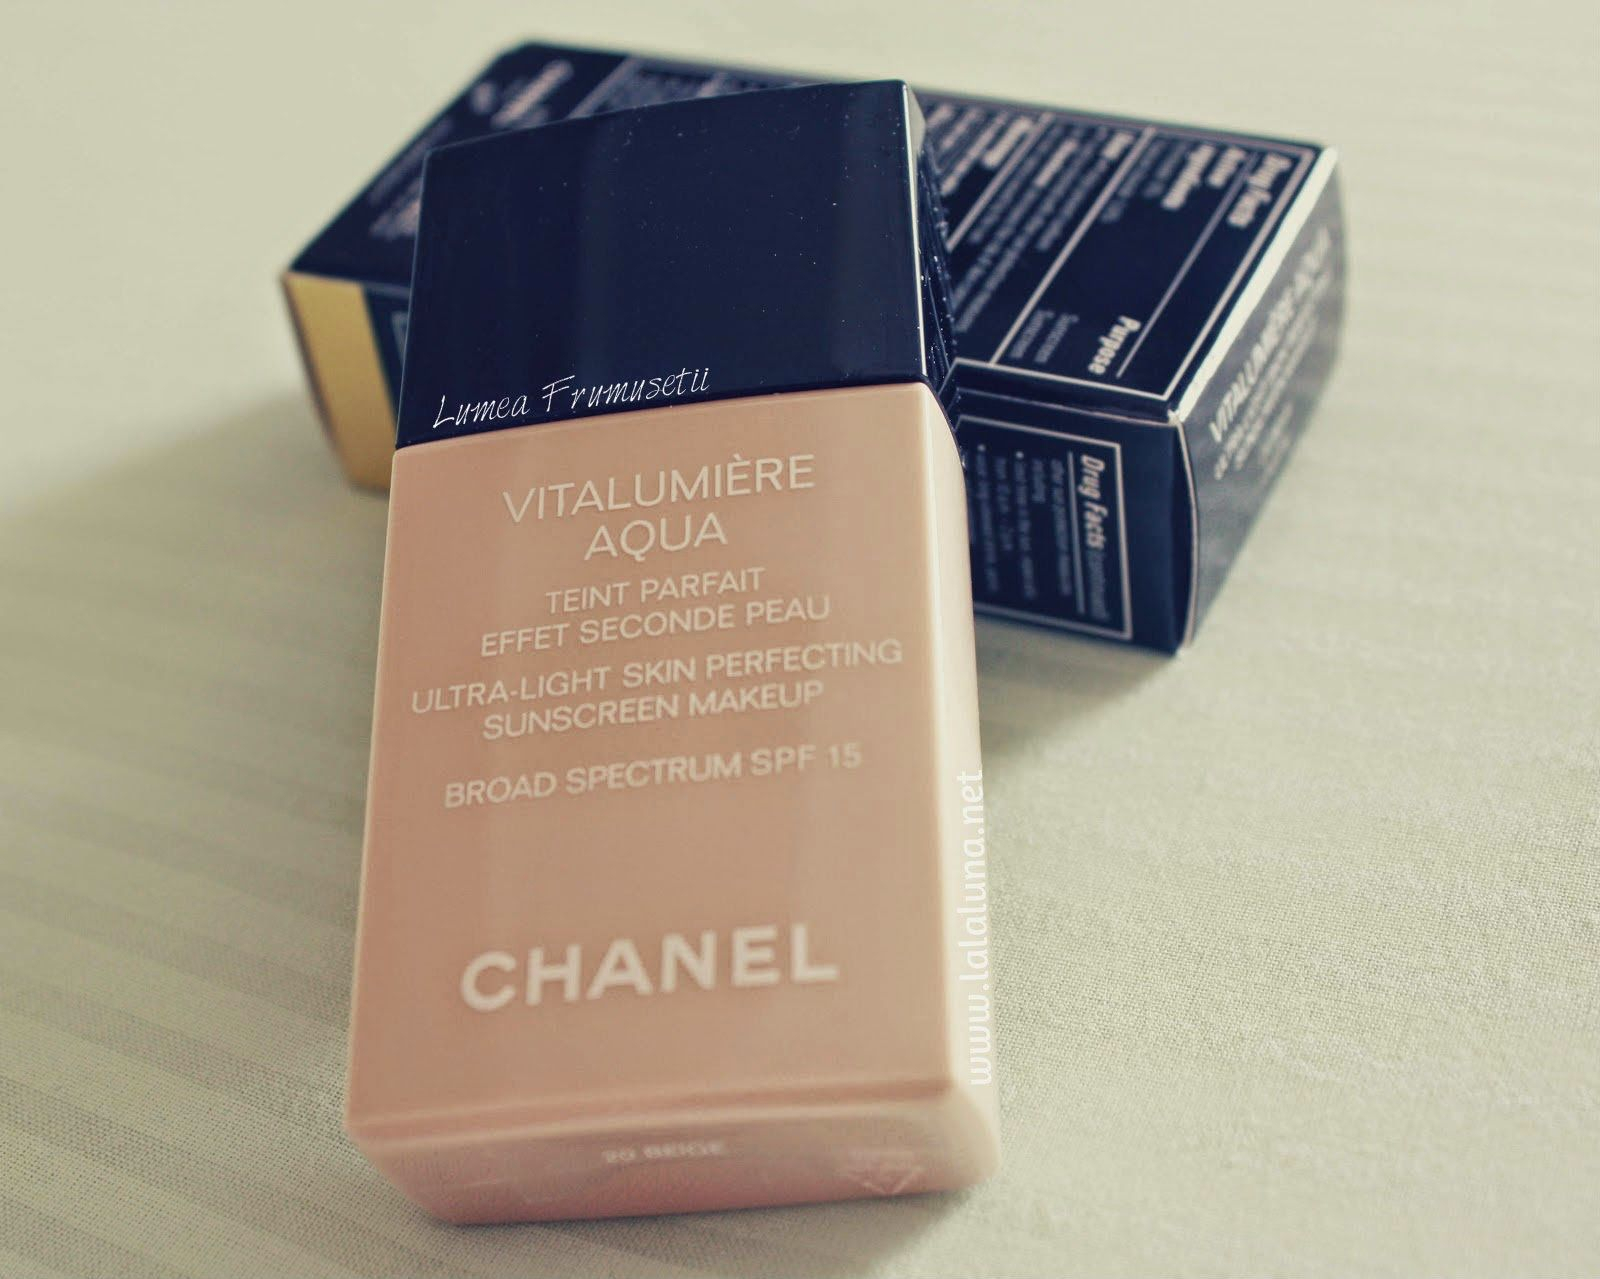 Review Chanel Vitalumiere Aqua Spf15 | Chanel Vitalumiere with regard to Calendar De Sanatate Si Frumusete